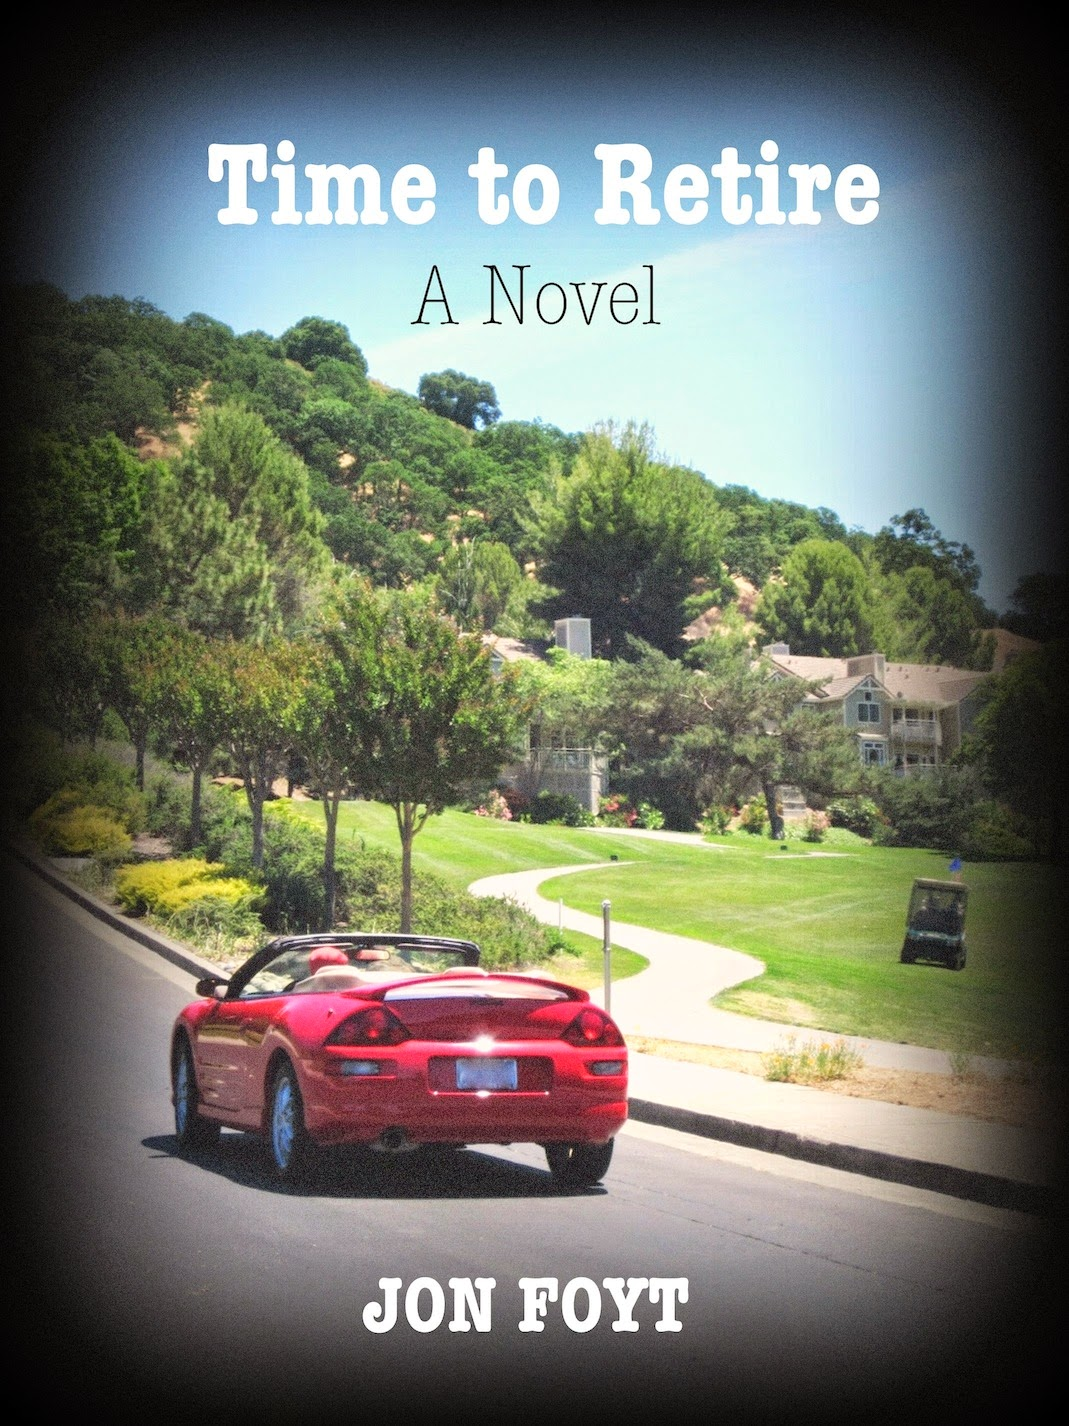 WW Giveaway: Time to Retire by Jon Foyt